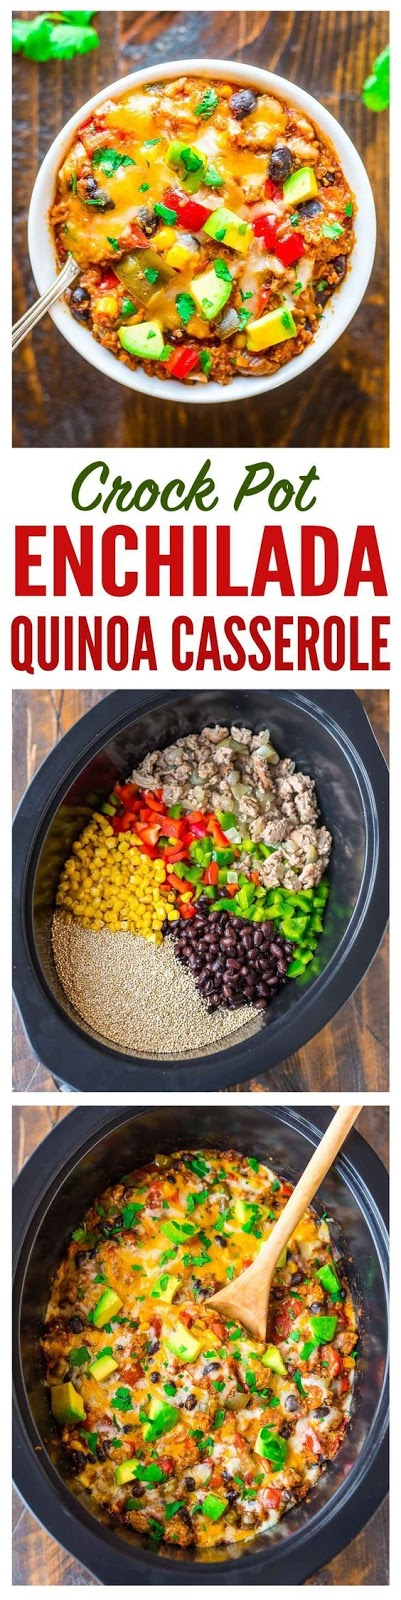 Super easy and DELICIOUS Crock Pot Mexican Casserole with quinoa, black beans, and chicken or turkey. Healthy comfort food, gluten free, and our whole family LOVES it! Recipe at wellplated.com | @wellplated - #Beans #Black #casserole #Chicken #comfort #Crock #delicious #EASY #family #Food #free #gluten #Healthy #loves #Mexican #Pot #Quinoa #recipe #super #turkey #wellplated #wellplatedcom